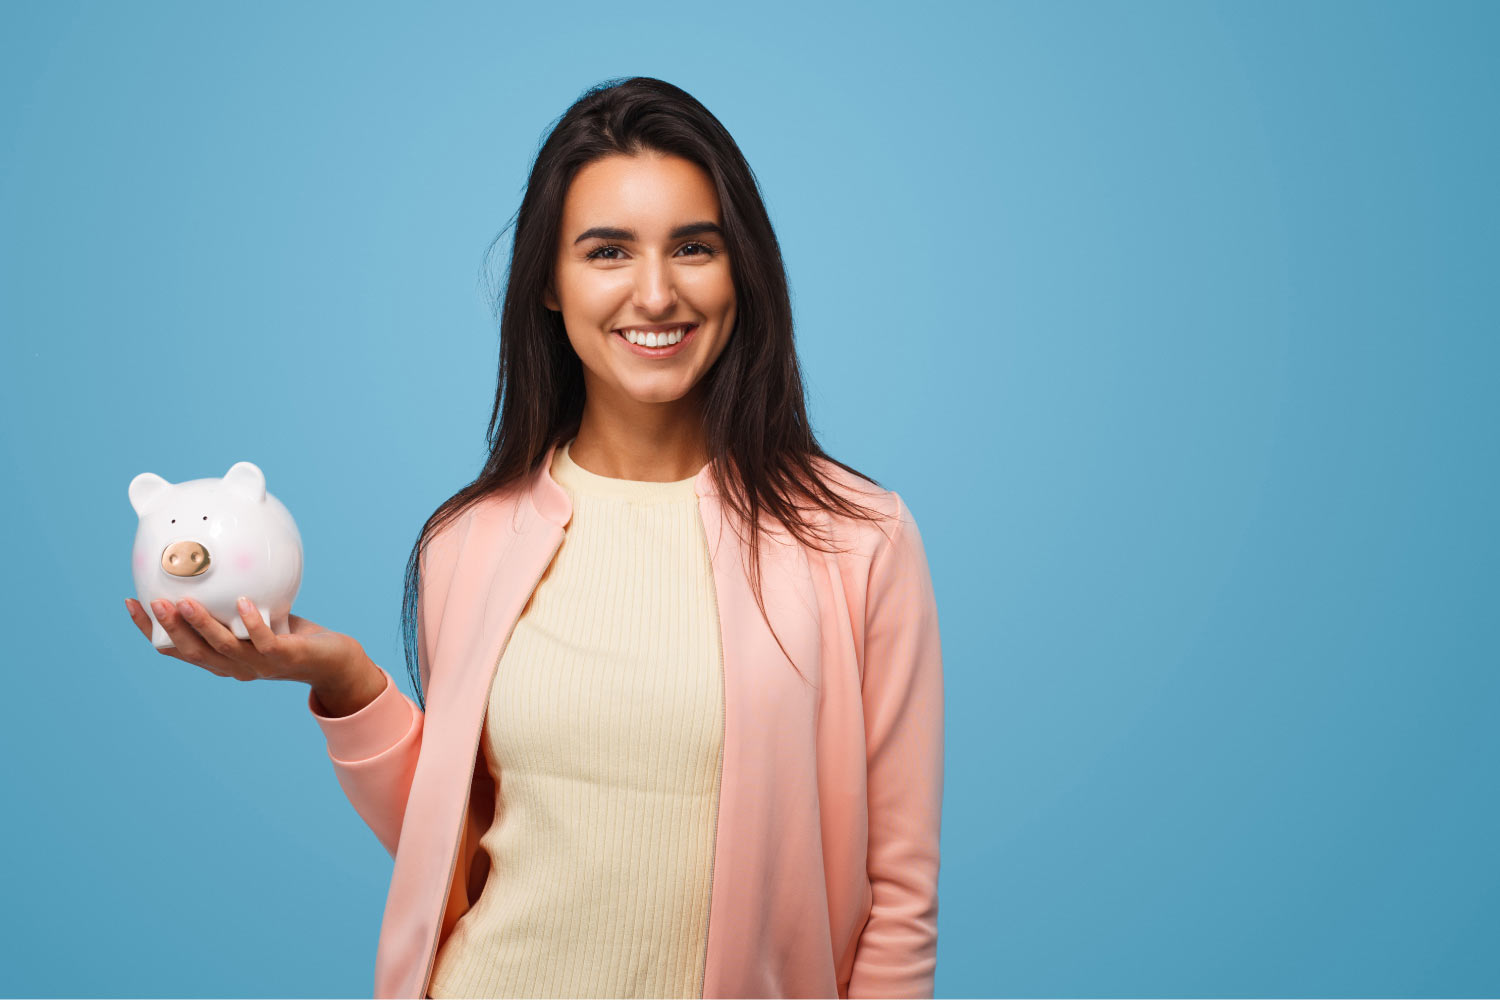 Brunette woman smiles as she holds a white piggy bank because she gets affordable dental care at Vero Dental in Denver, CO